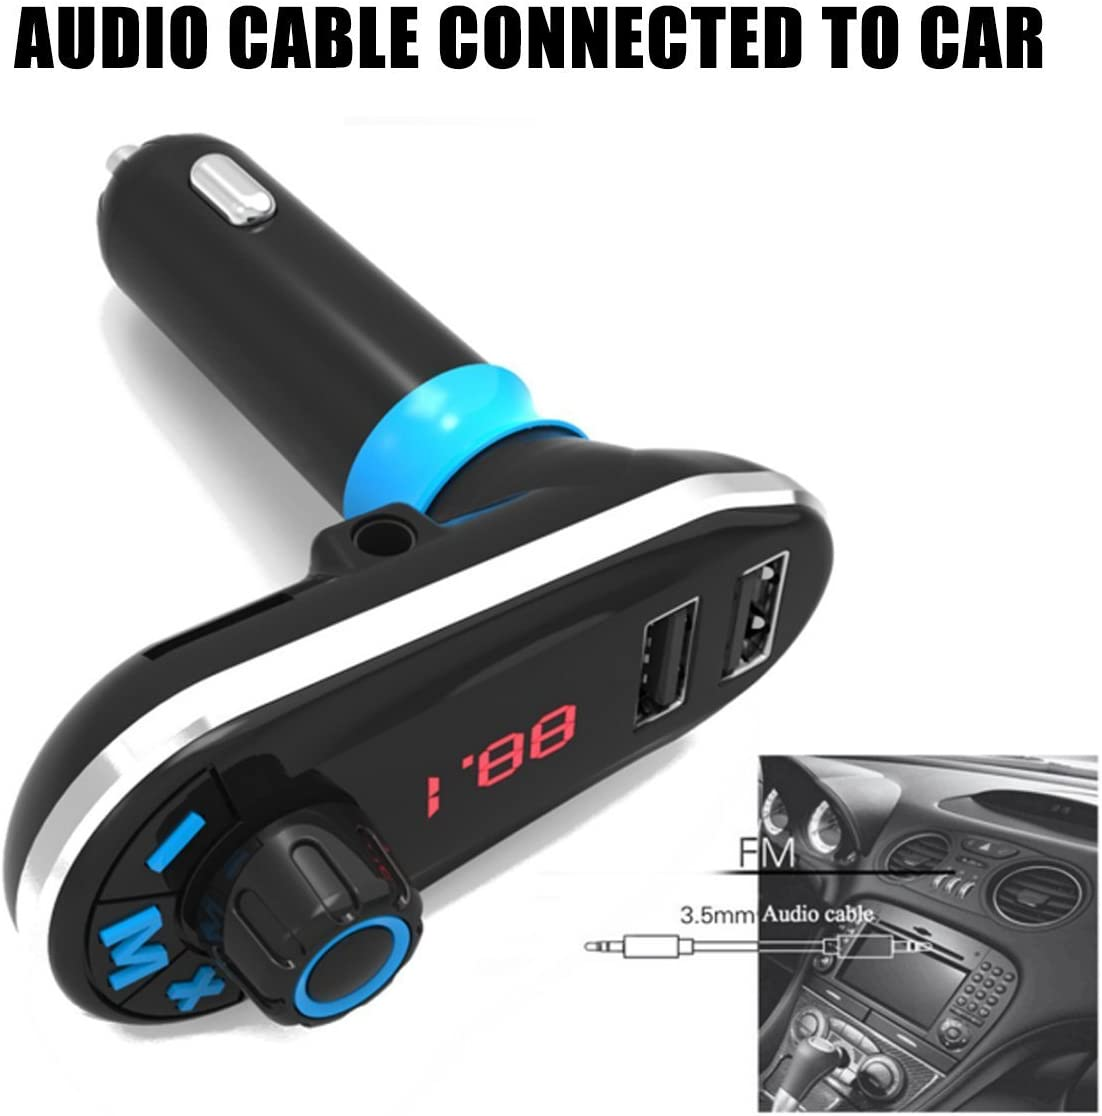 MATCC FM Transmitter Car Bluetooth MP3 Player FM Radio Stereo Adapter,Bluetooth Receiver with Bluetooth Handsfree Calling and Dual USB Port